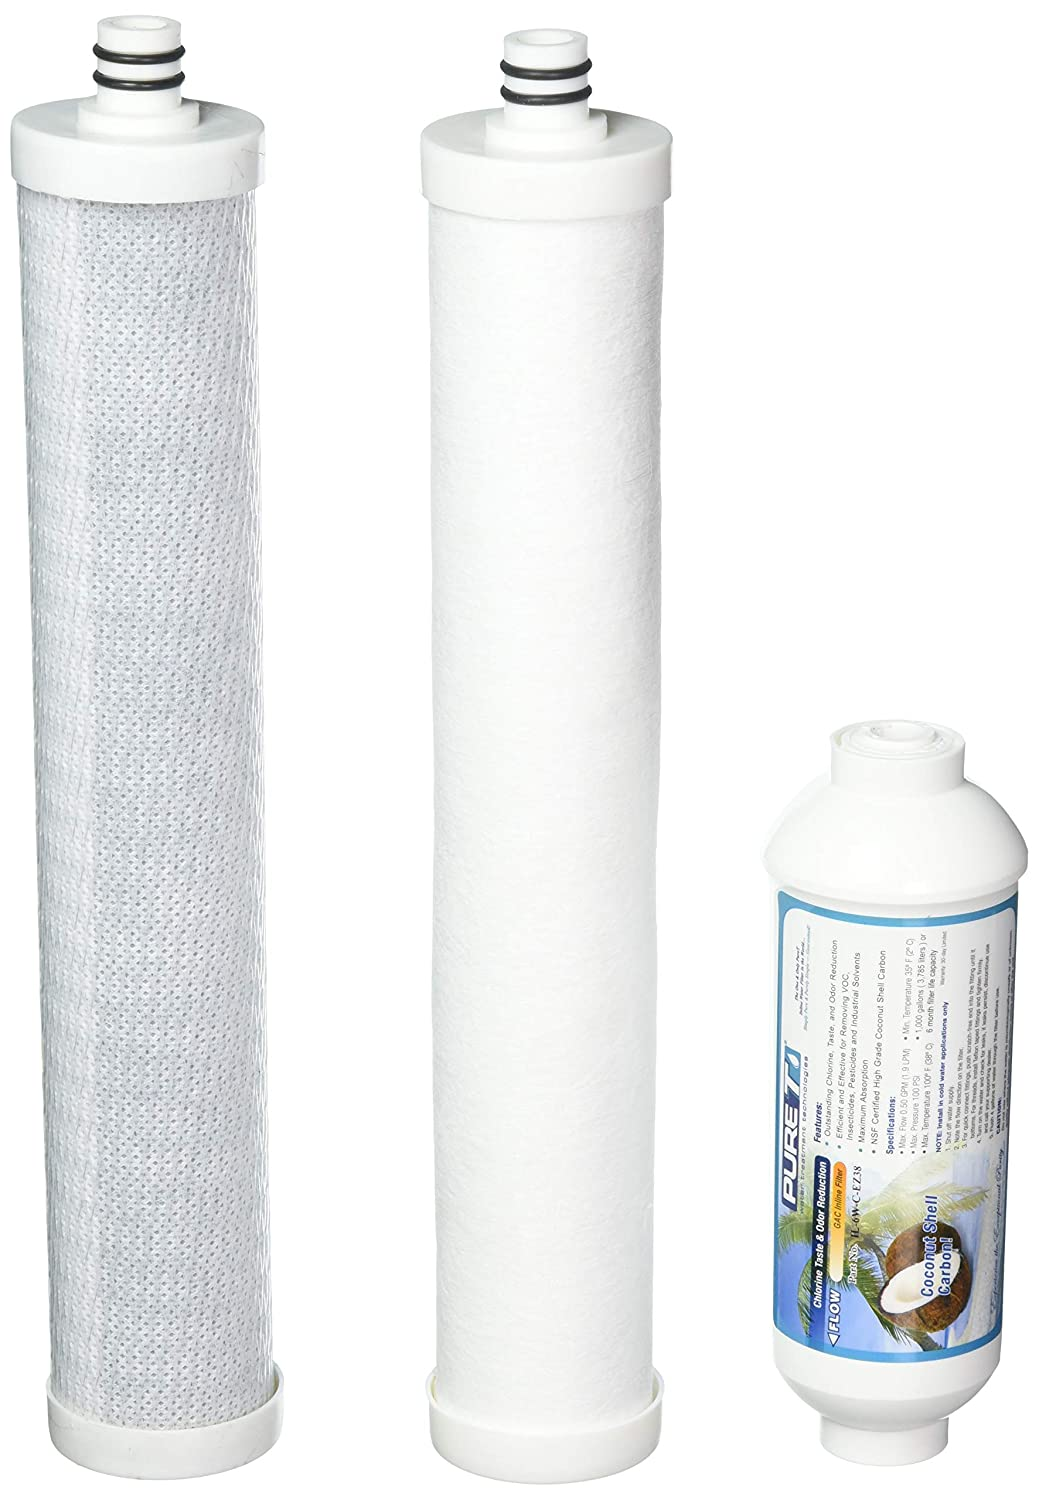 Culligan AC-30 Compatible Filters 3 Filter Set KWAC-30 PureT USA Brand Reverse Osmosis Drinking Water System Replacement Cartridges